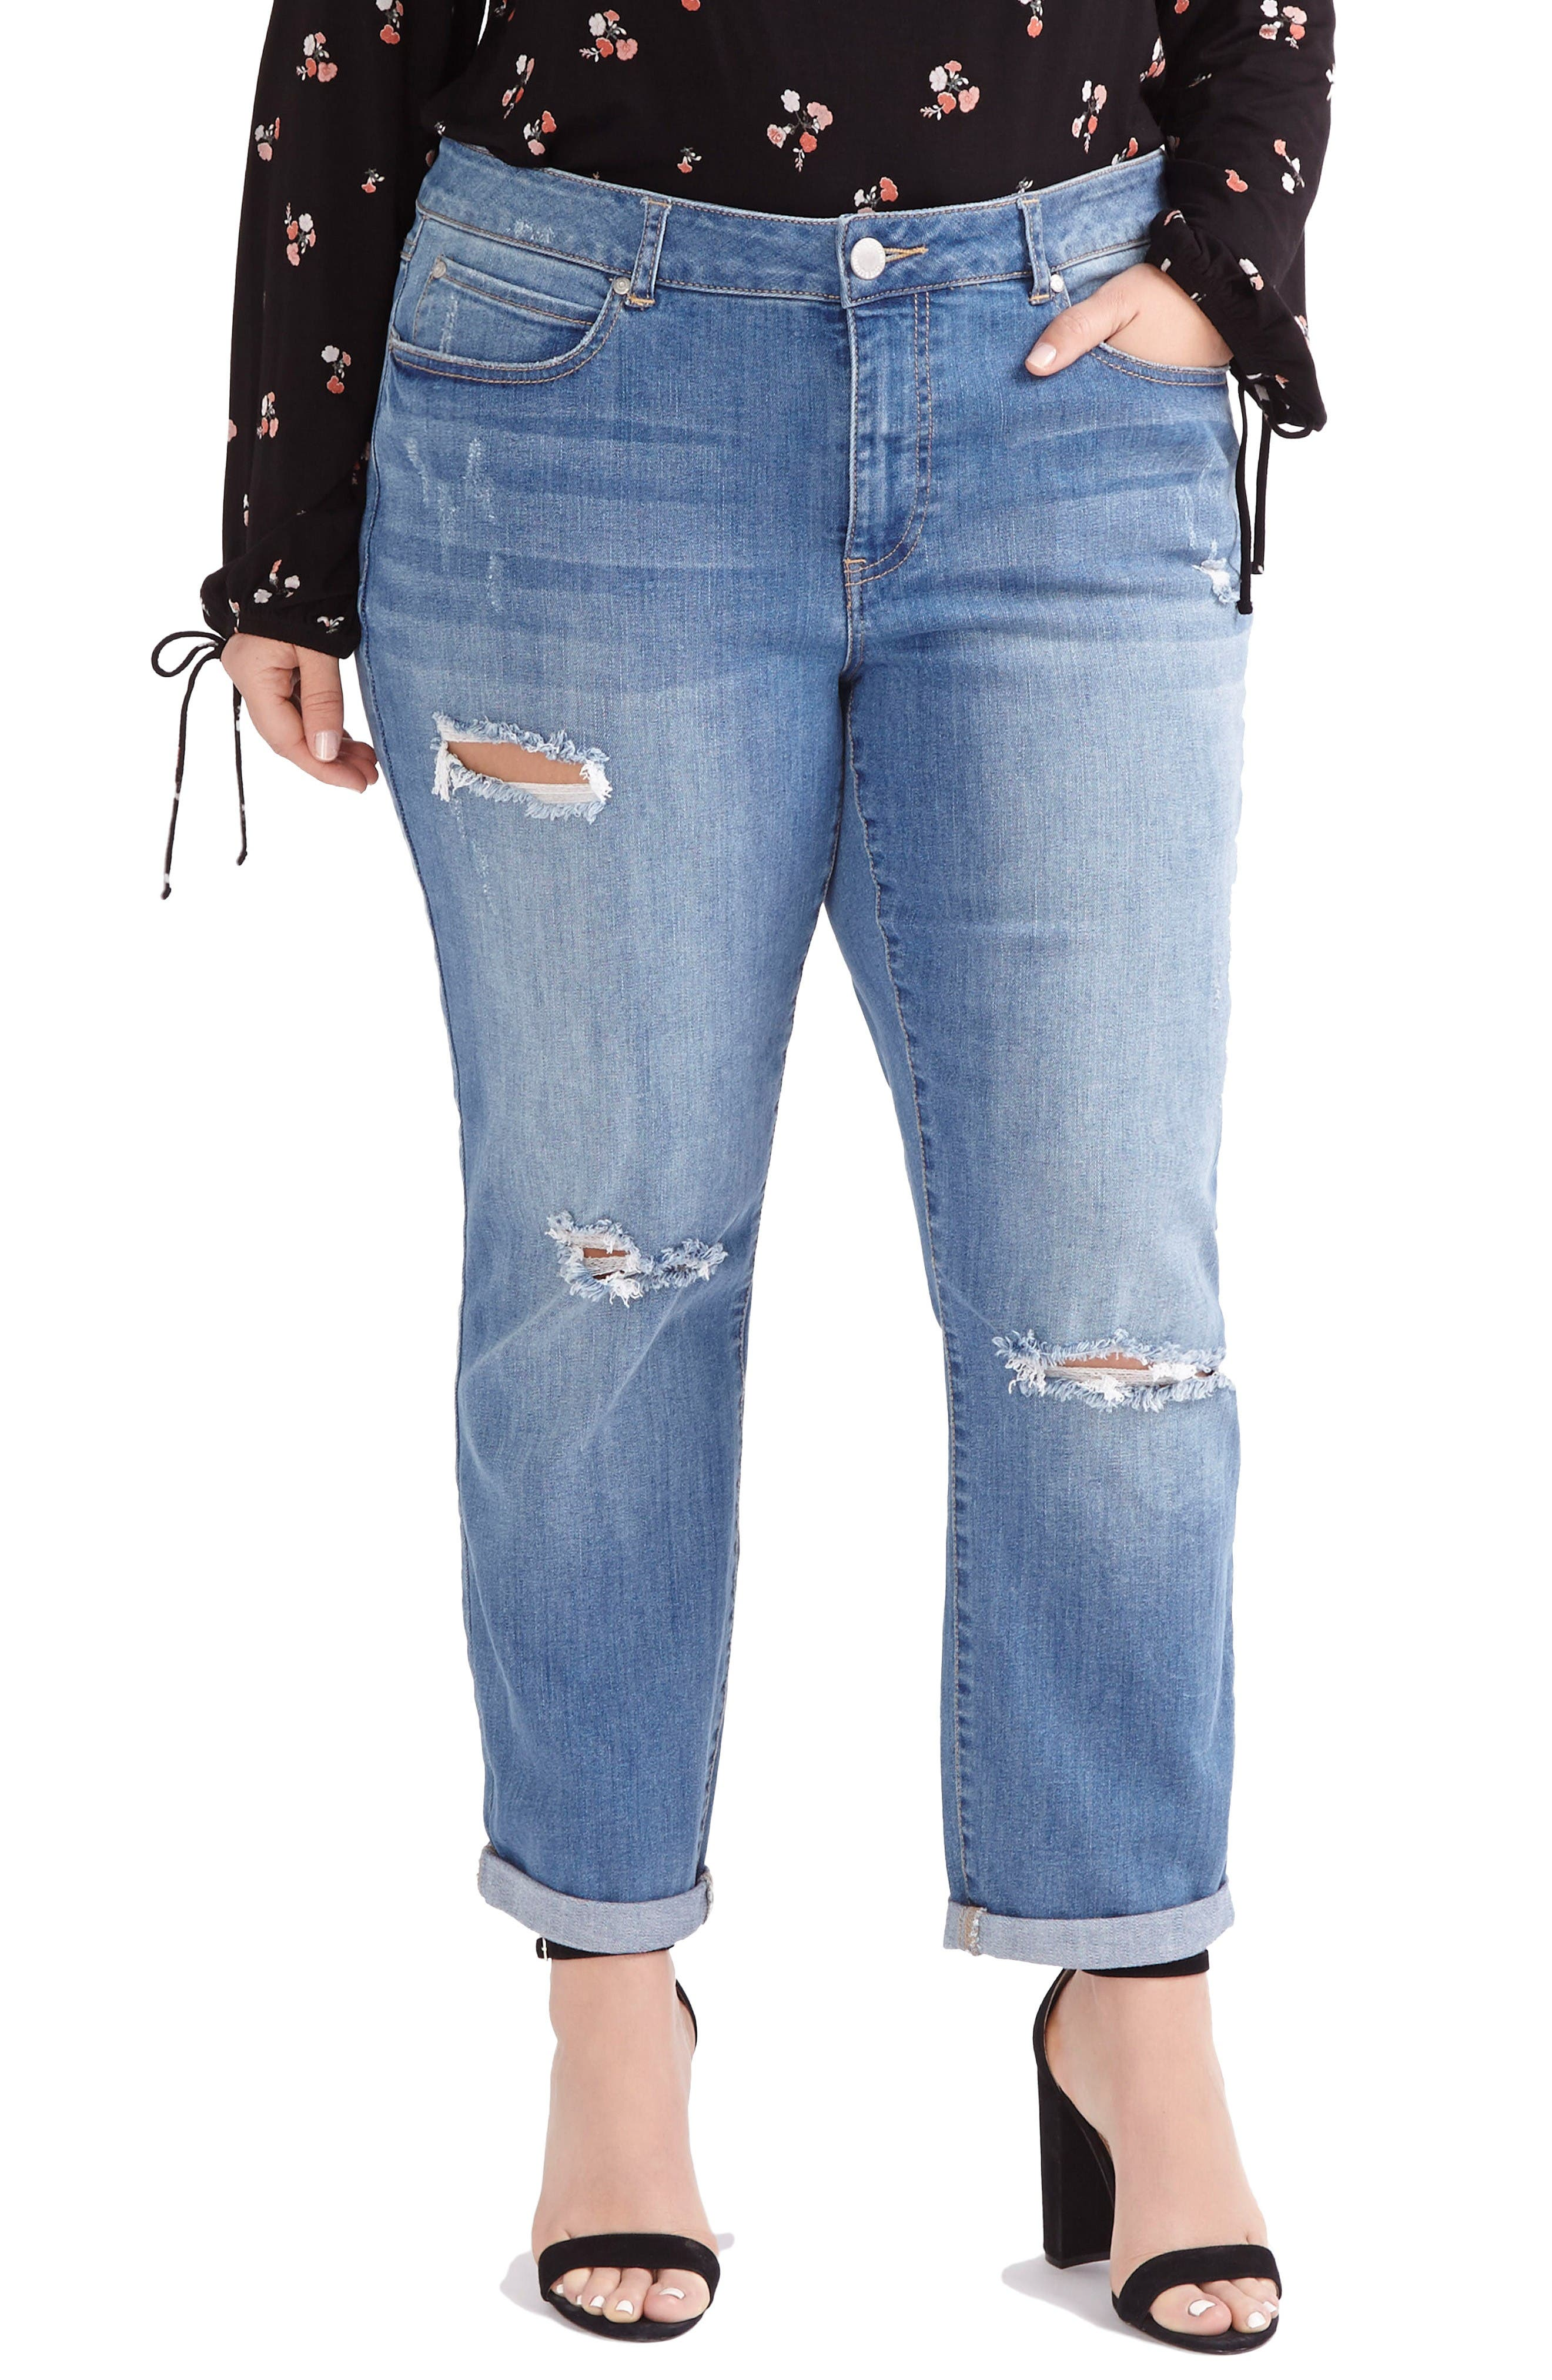 Main Image - ADDITION ELLE LOVE AND LEGEND Ripped Boyfriend Jeans (Plus Size)